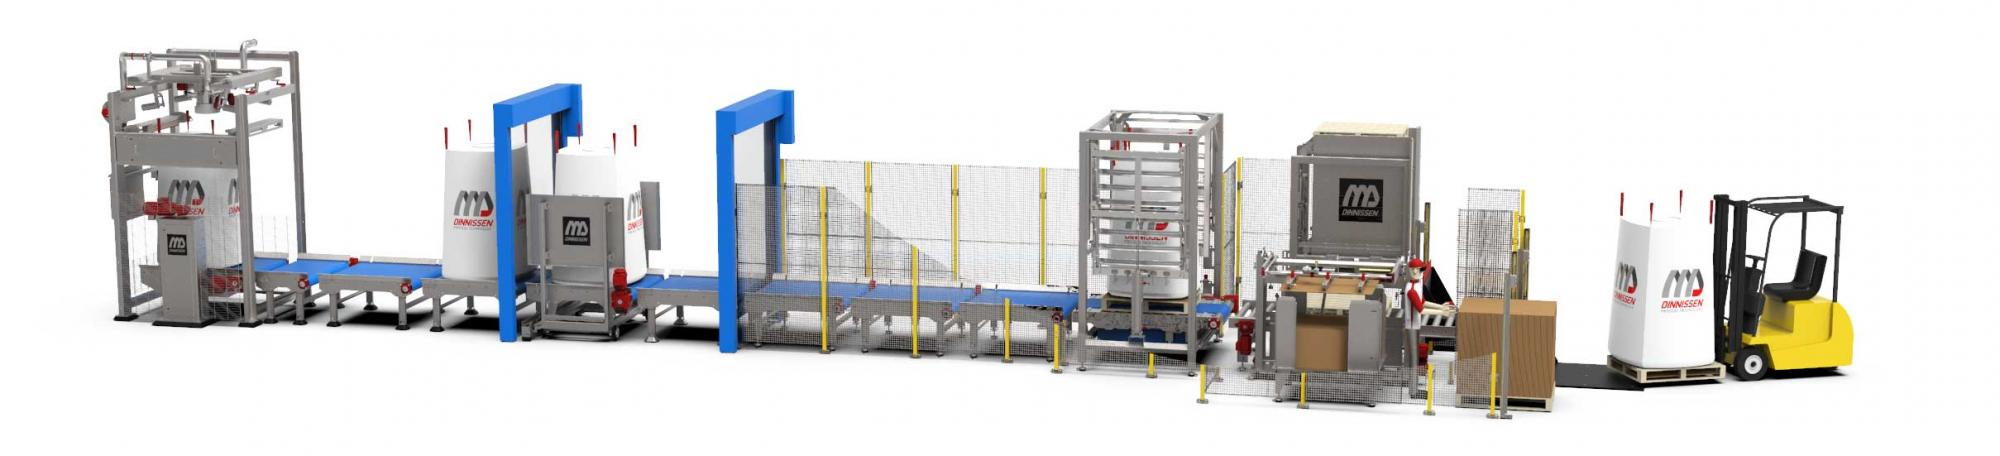 High-Care big-bag filling and palletizing